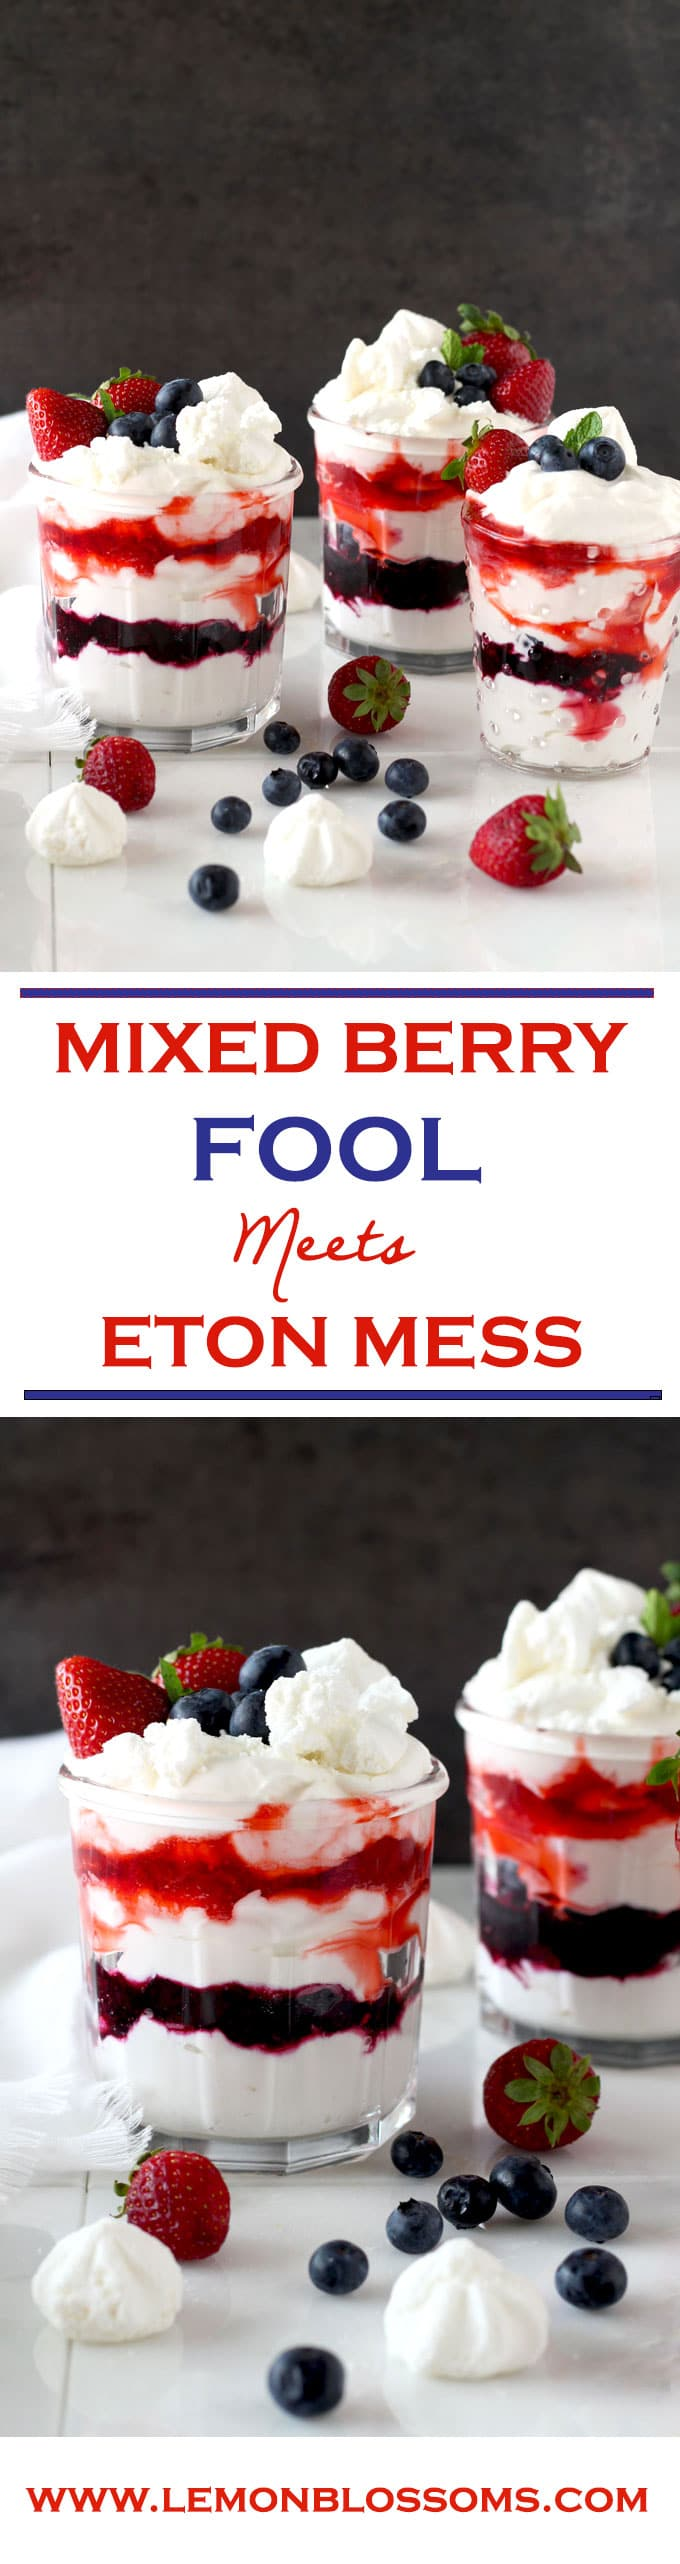 This Mixed Berry Fool is the simplest, most delicious, and fluffiest no bake dessert sure to impress your family and friends! Easy and quick makes this the perfect dessert for summer!